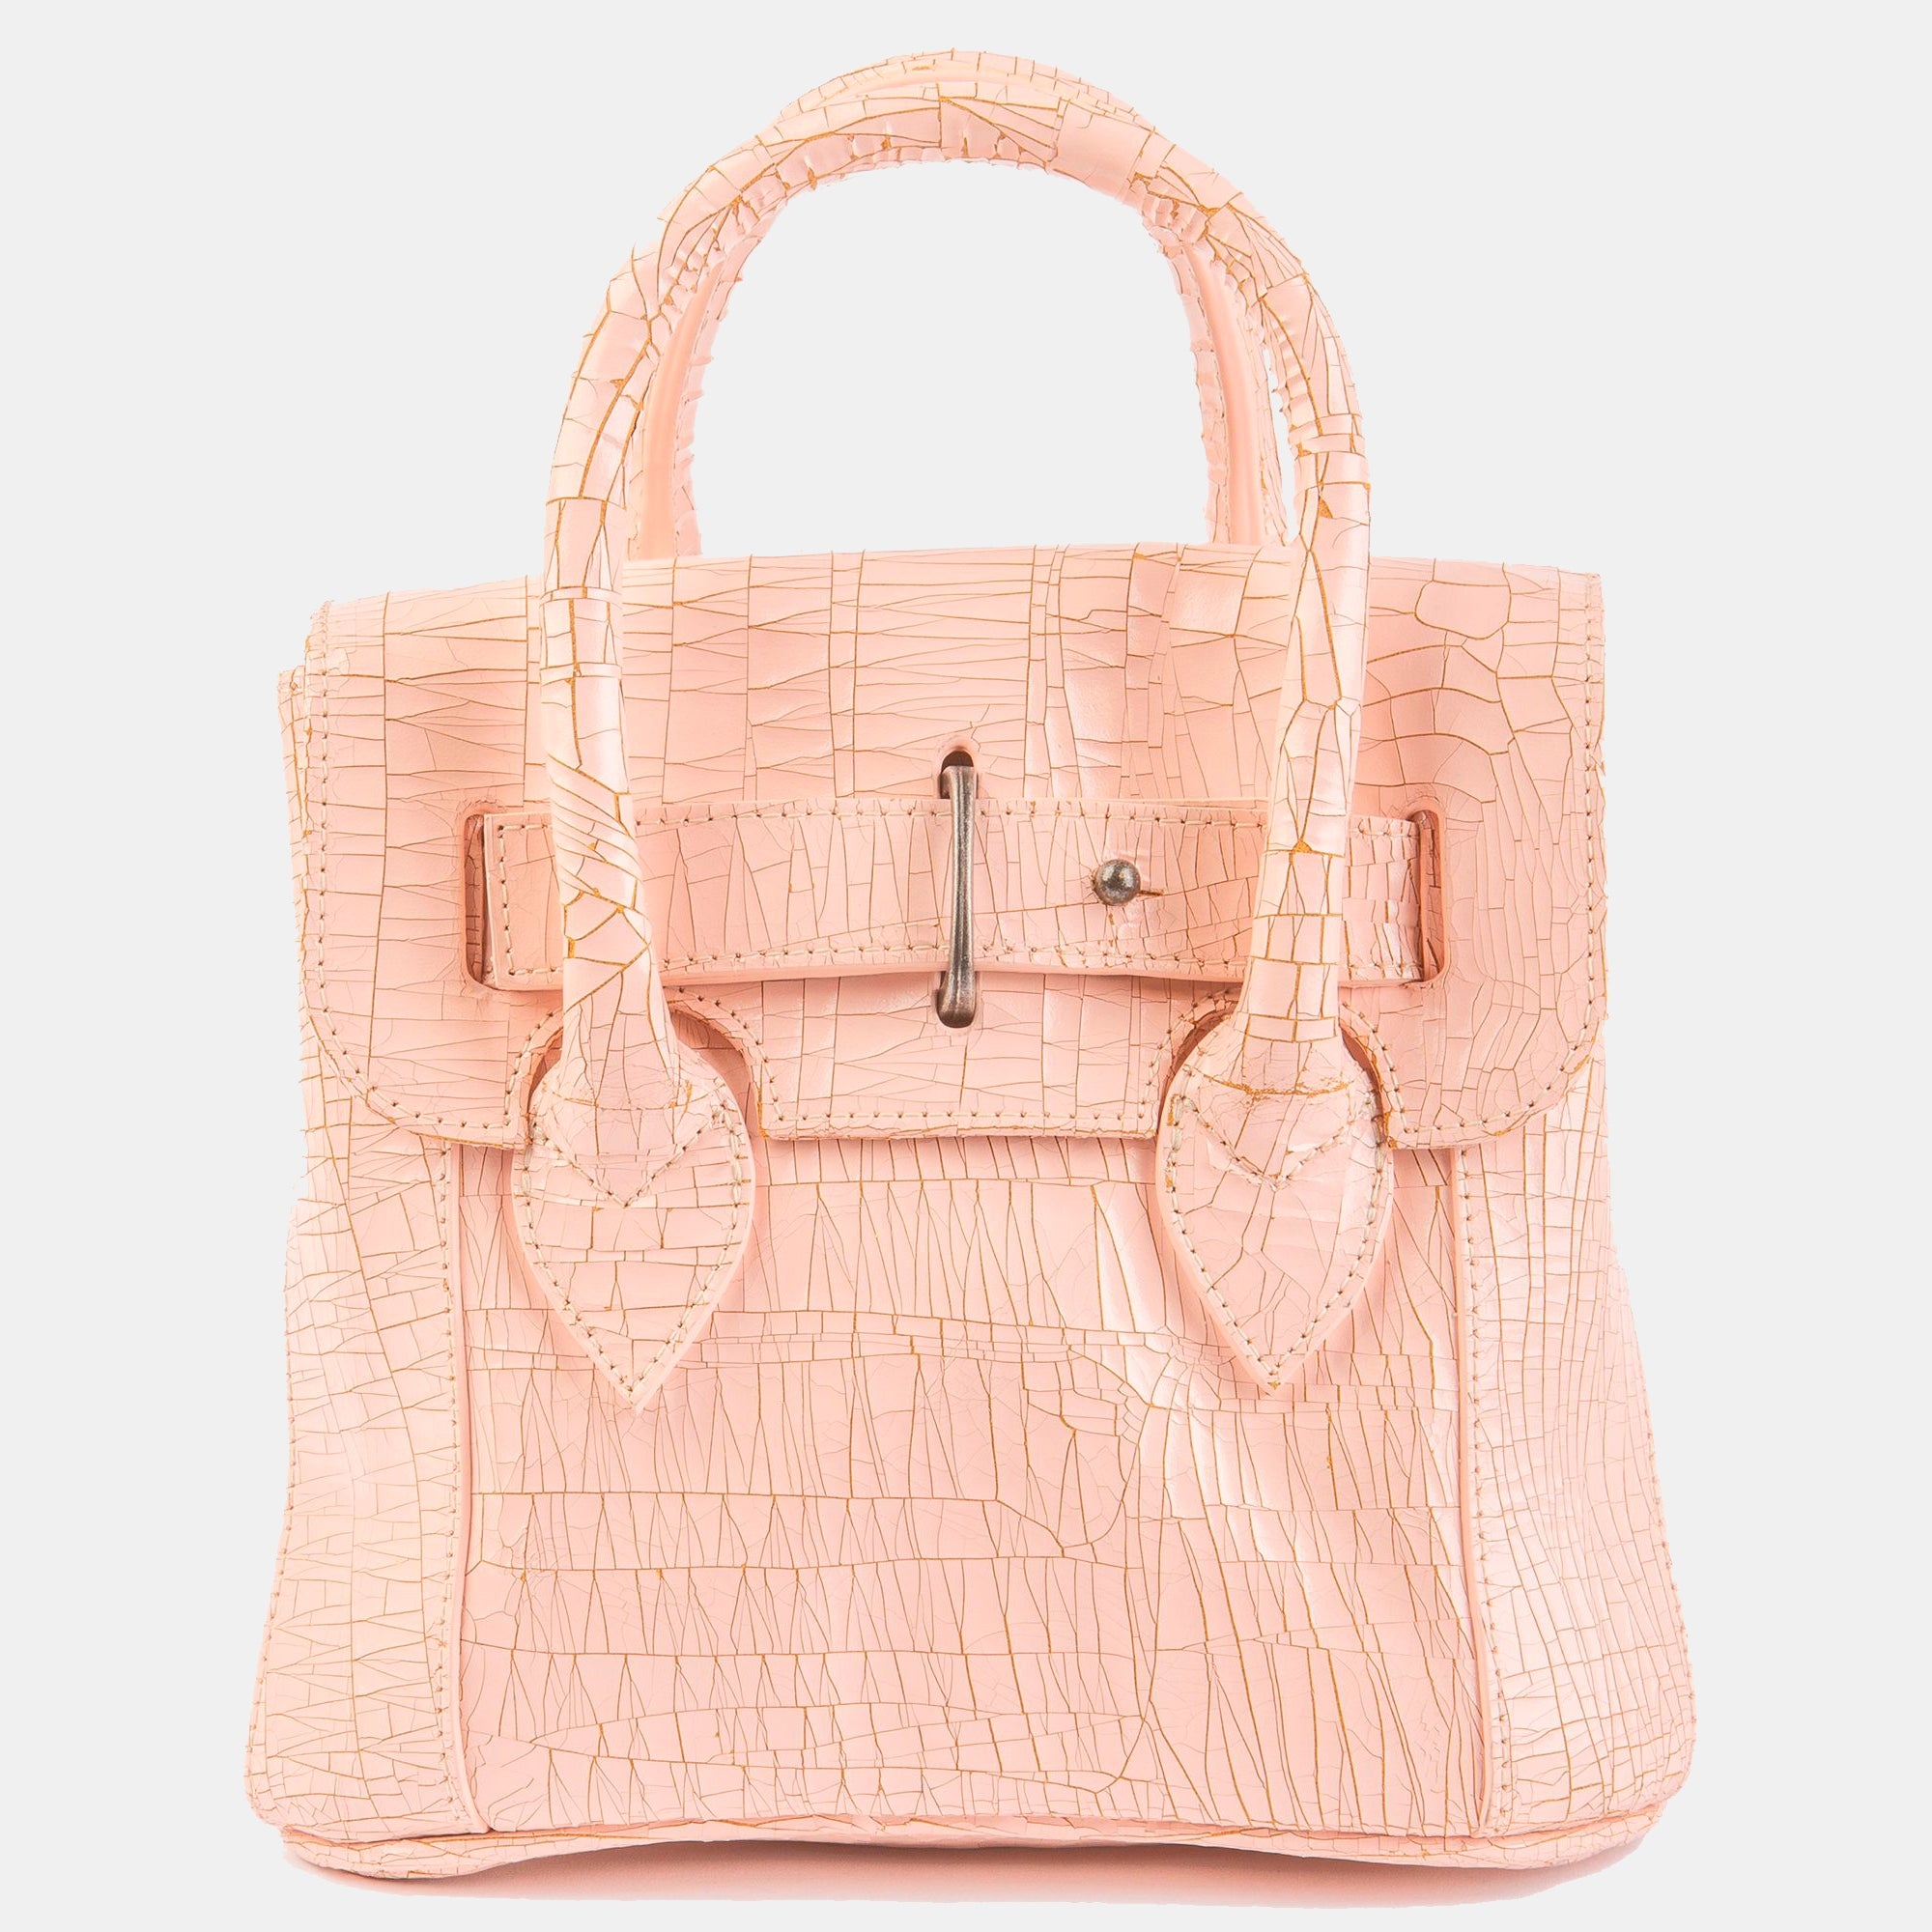 Luxury leather sustainable silk small handbag shoulder bag